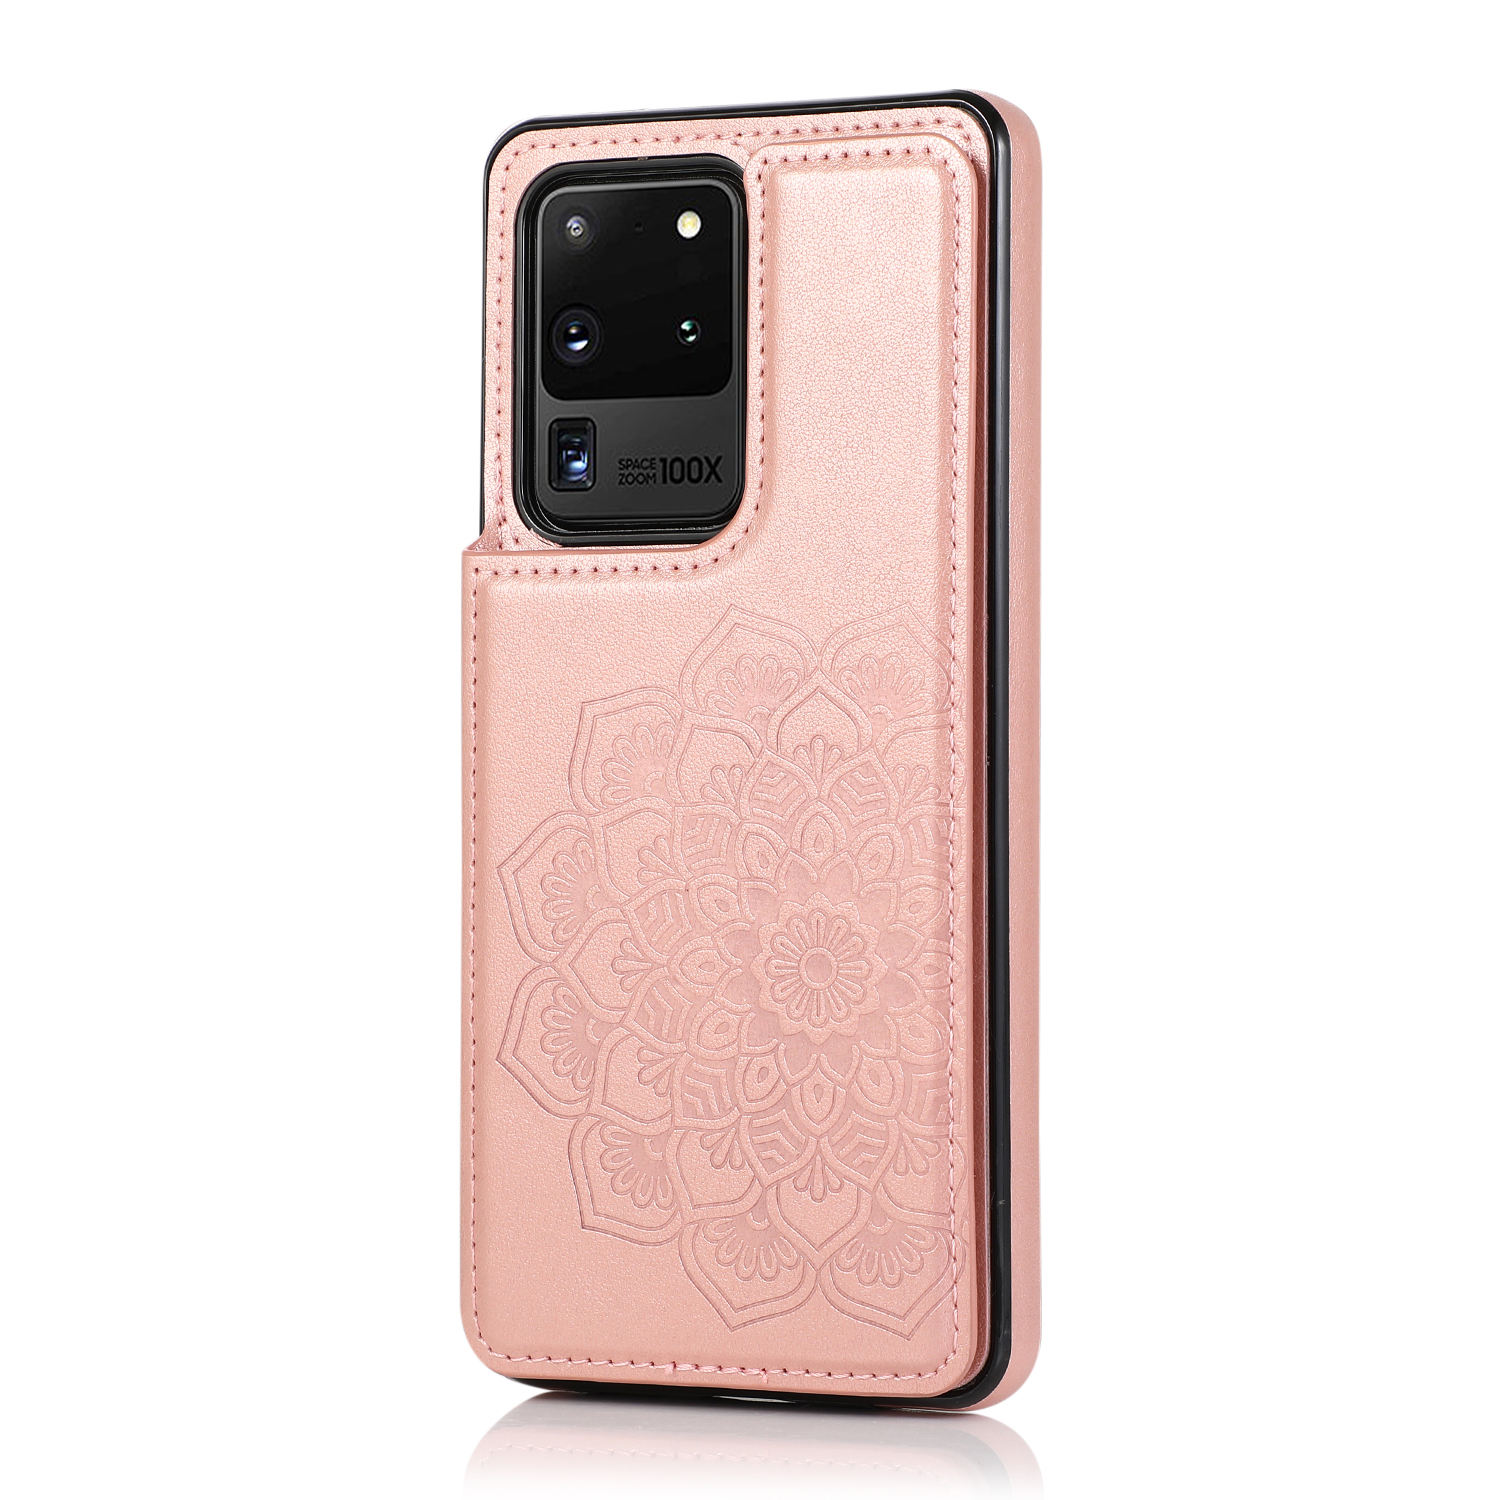 Für Samsung S20 S21 UItra A71 A51 A31 Geprägte <span class=keywords><strong>Abdeckung</strong></span> Amazon Hot Double Buckle Bags Schöne Mandala Flower Leather Phone Case